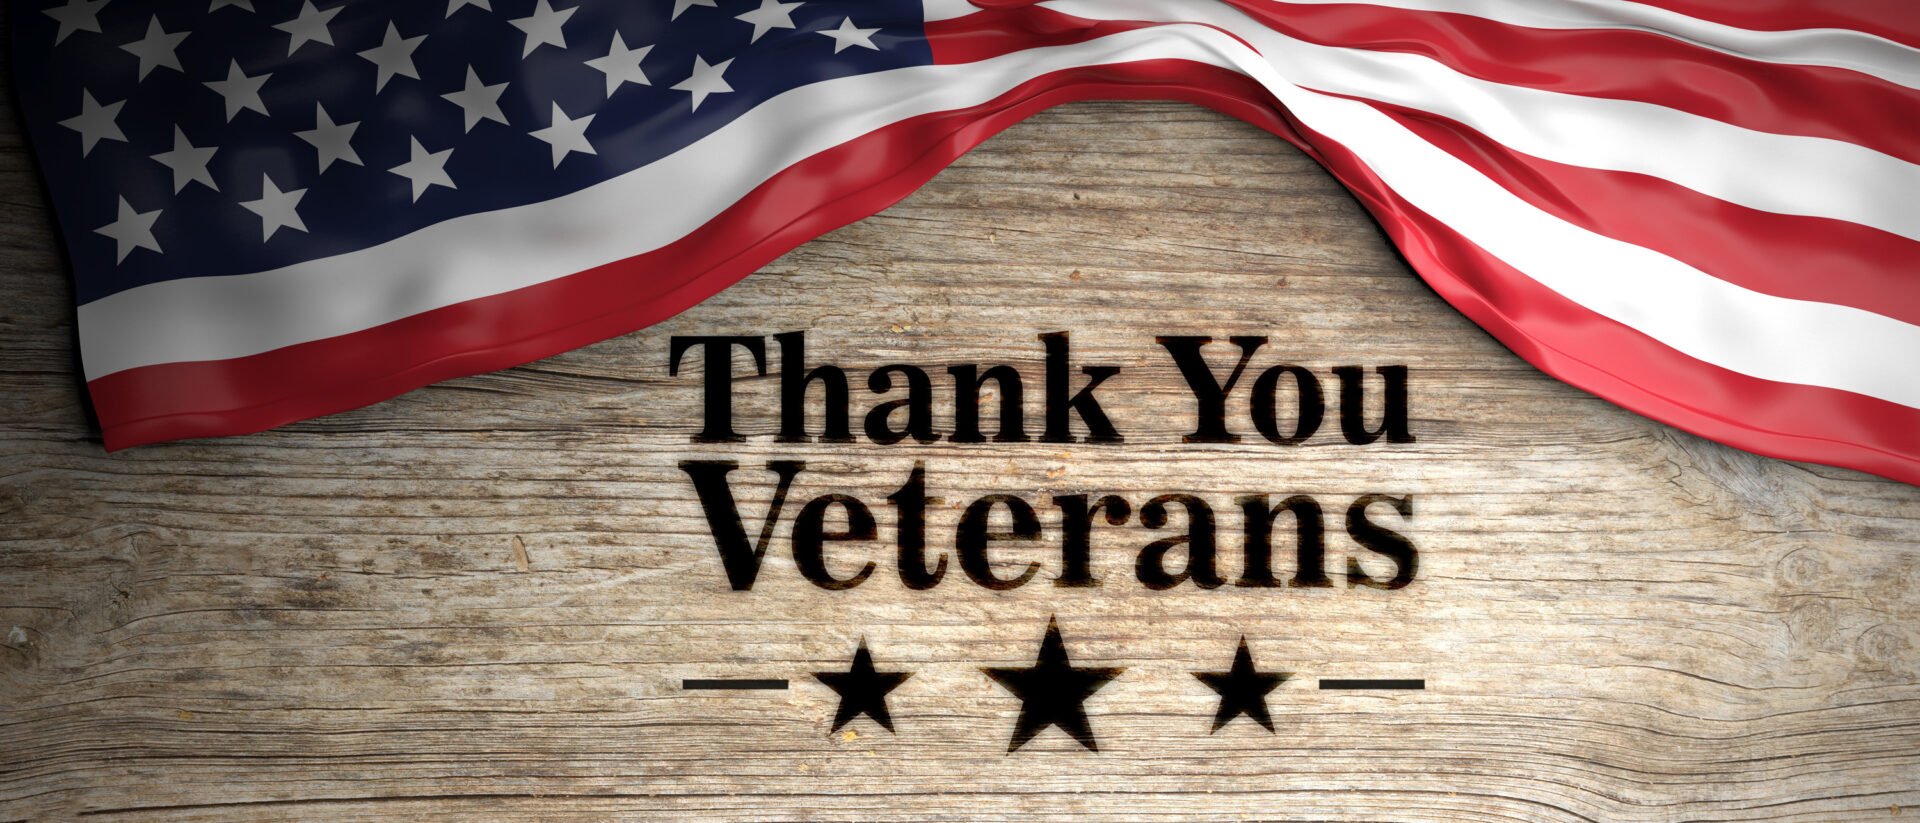 A sign of gratitude to veterans